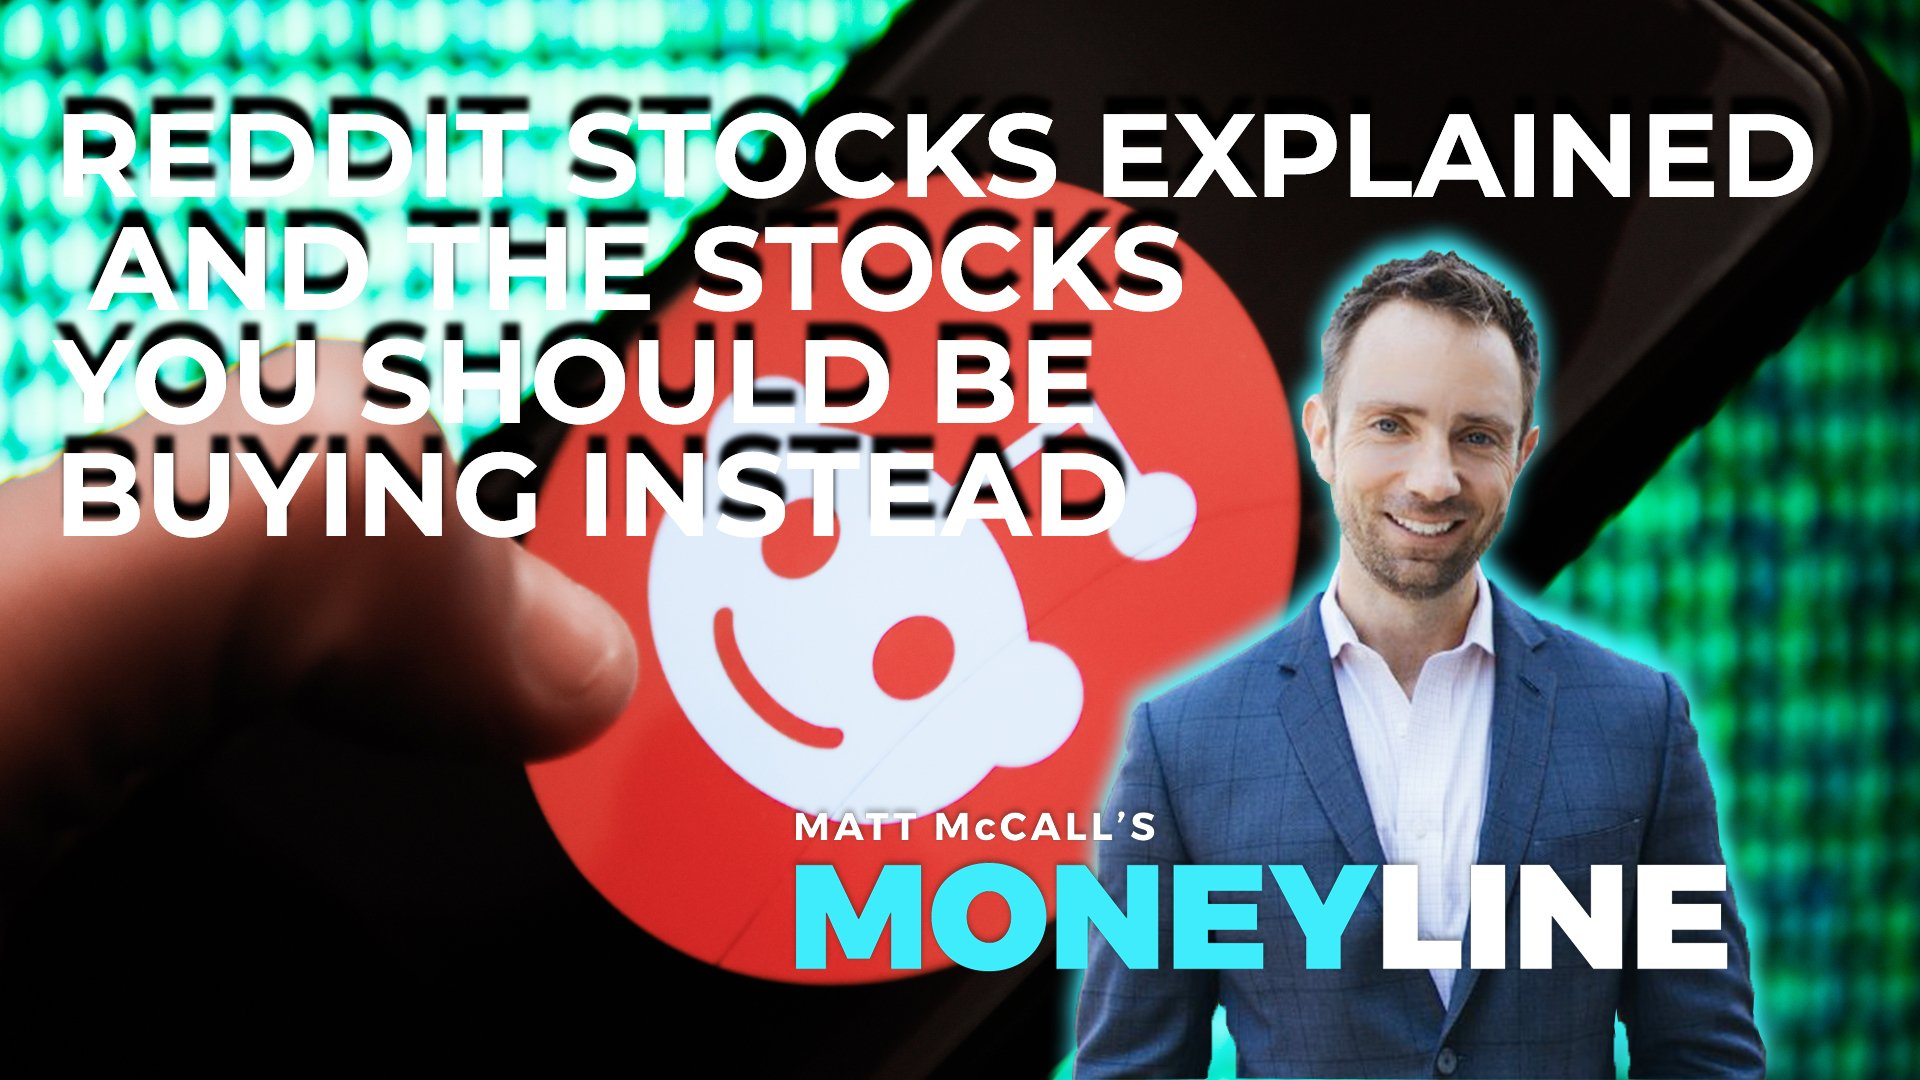 Matt McCall's Moneyline: Reddit Stocks Explained and the Stocks You Should Be Buying Instead